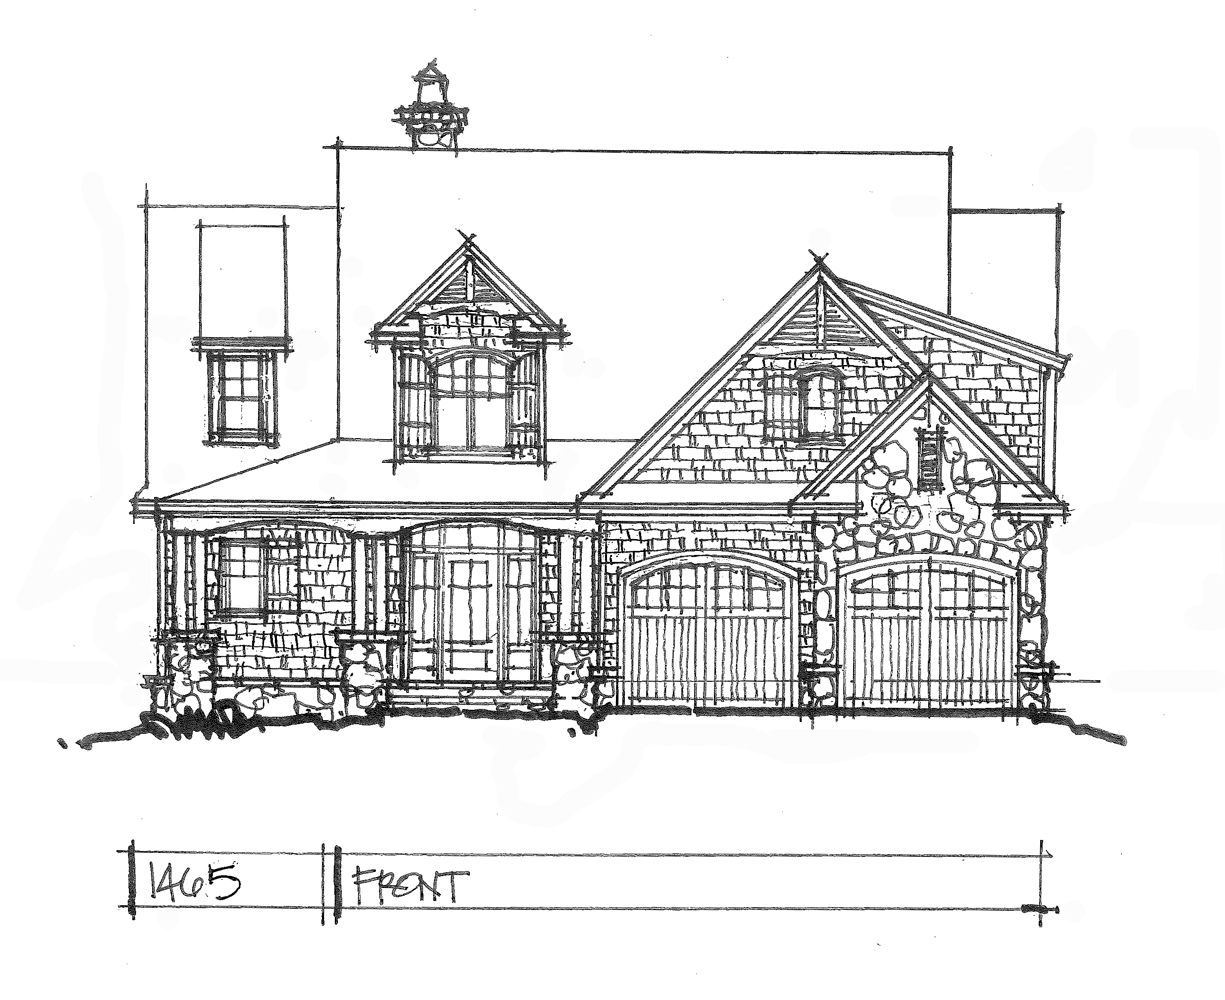 Check out the front rendering of house plan 1465